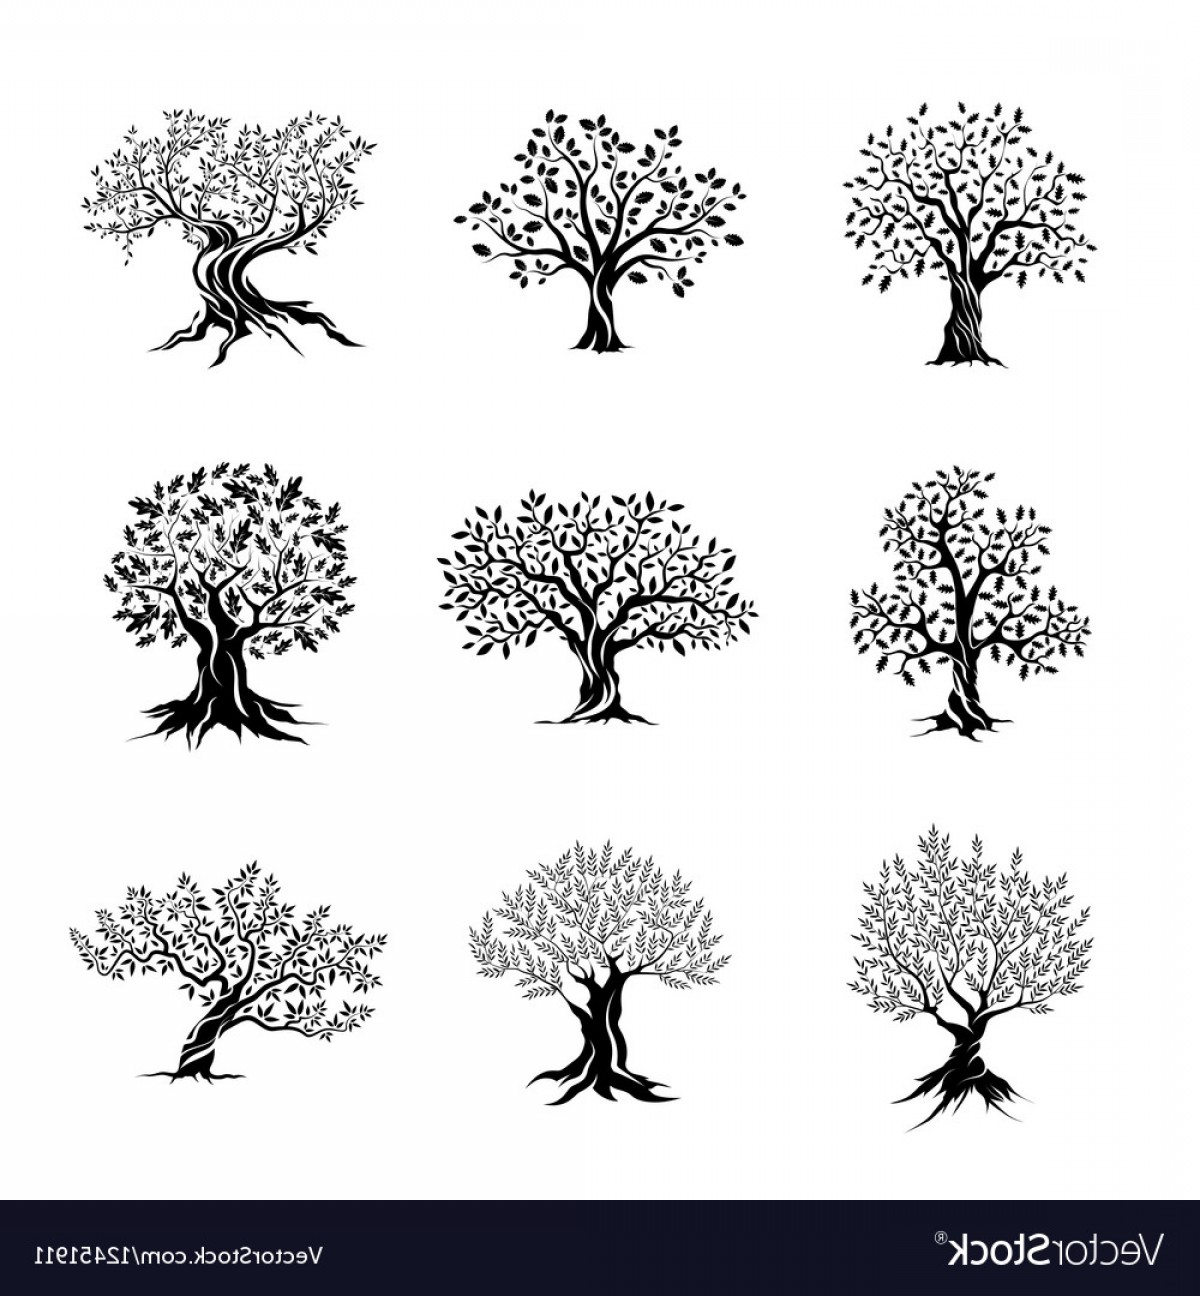 Oak Tree Silhouette Vector Graphics: Magnificent Olive And Oak Trees Silhouette Vector